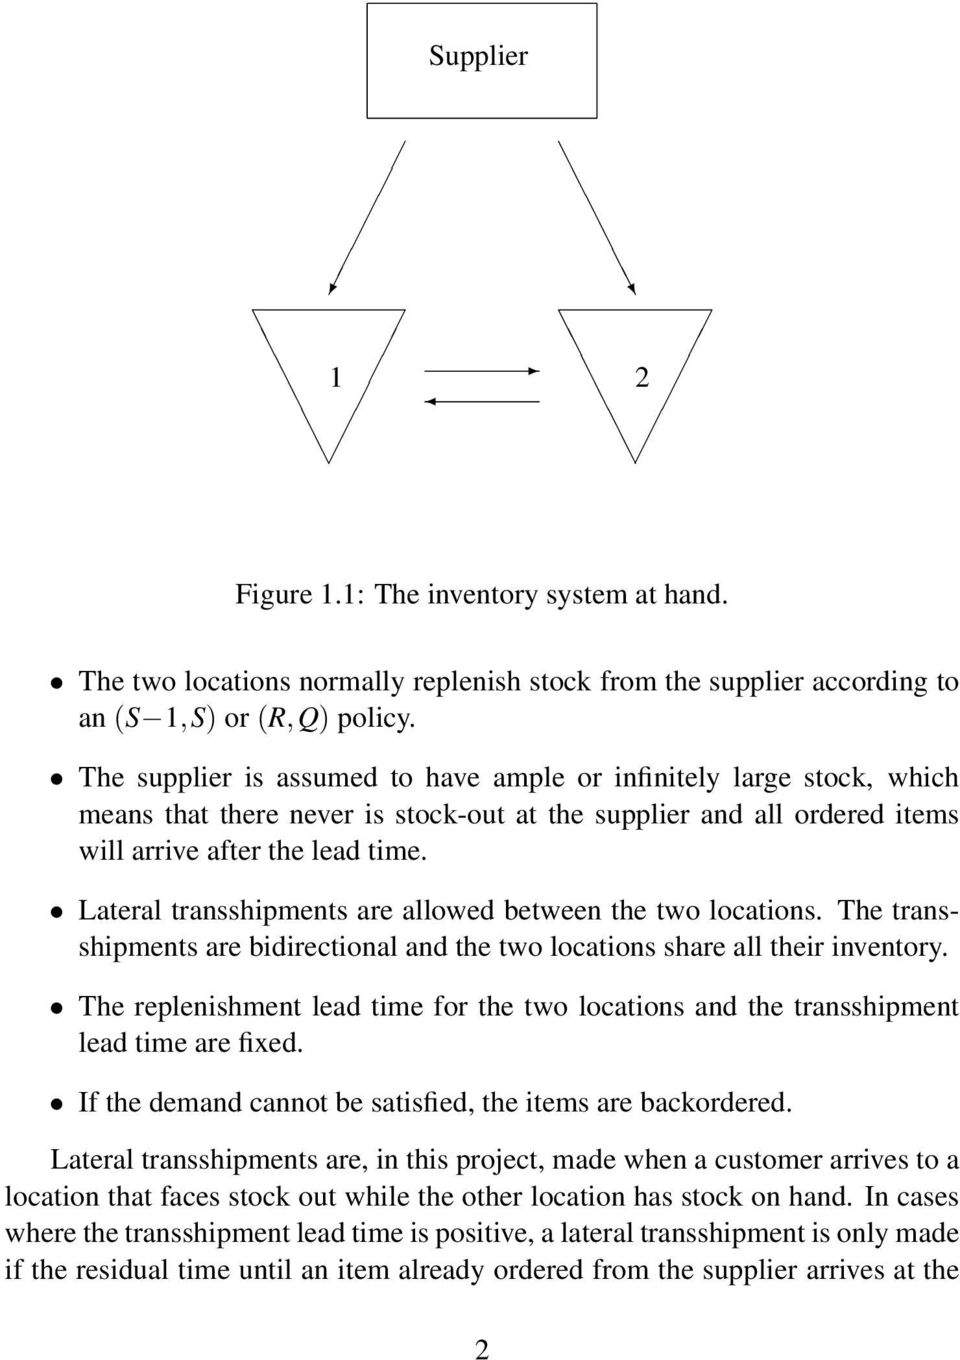 Lateral transshipments are allowed between the two locations. The transshipments are bidirectional and the two locations share all their inventory.